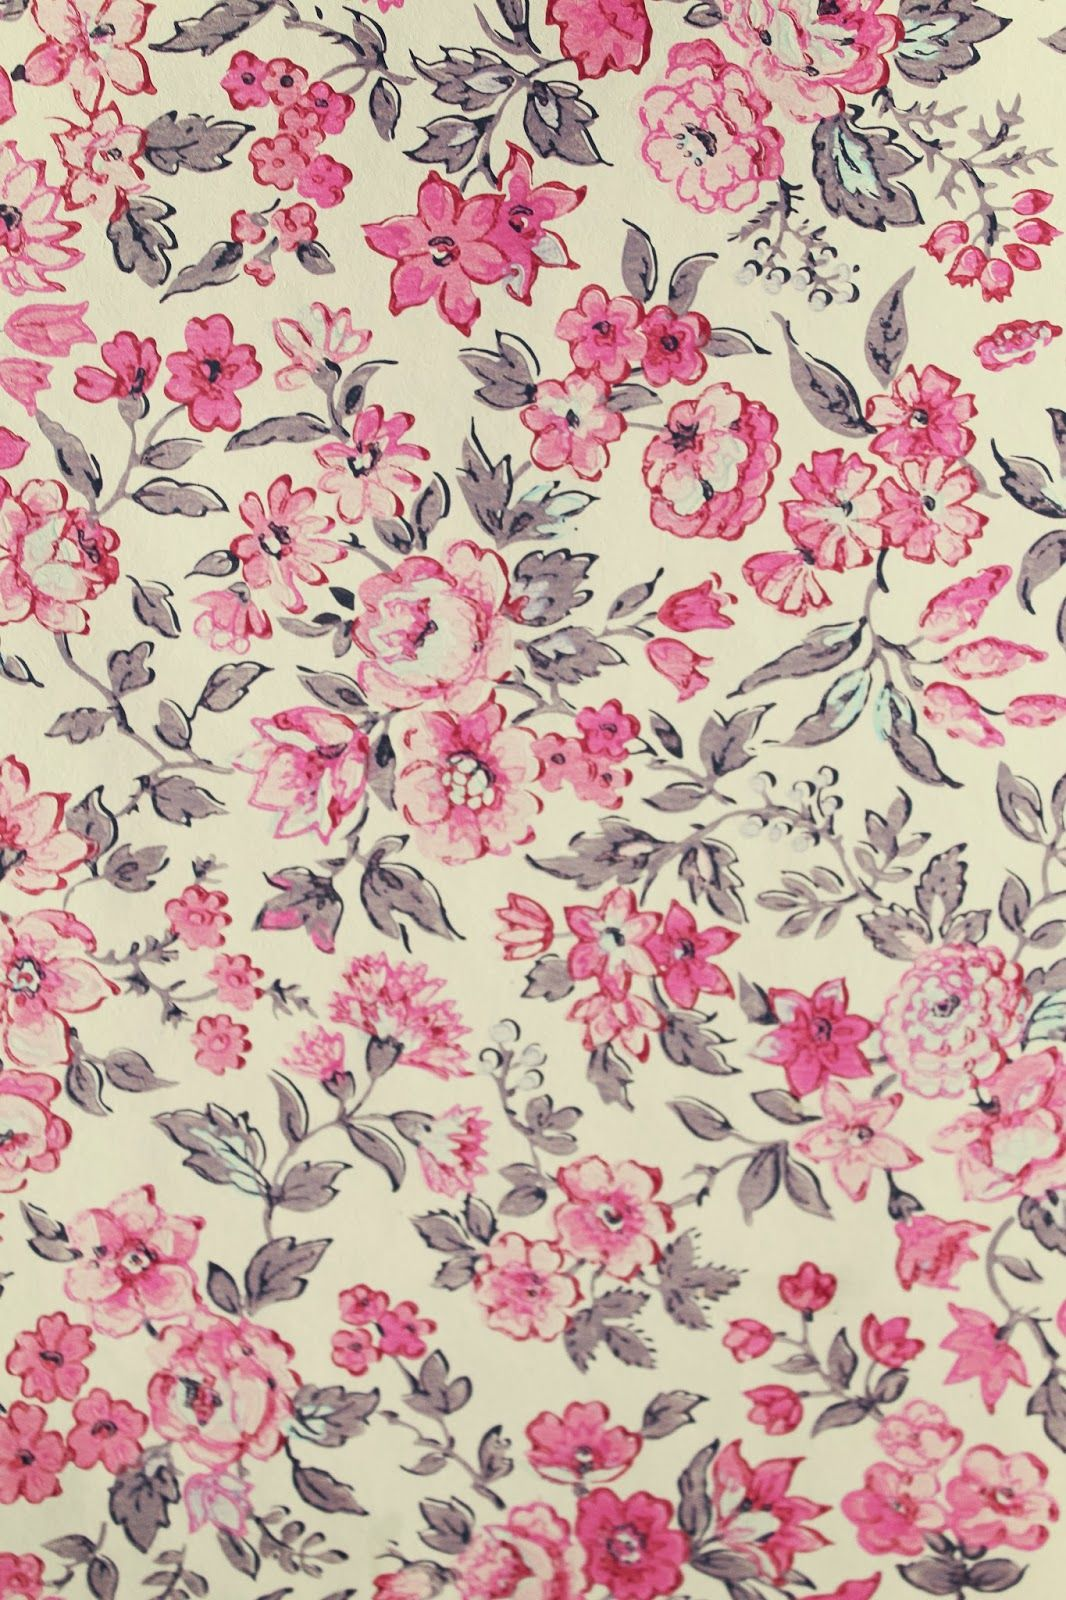 Vintage floral iphone wallpaper tumblr - Wallpaper Tumblr Vintage For Iphone Google